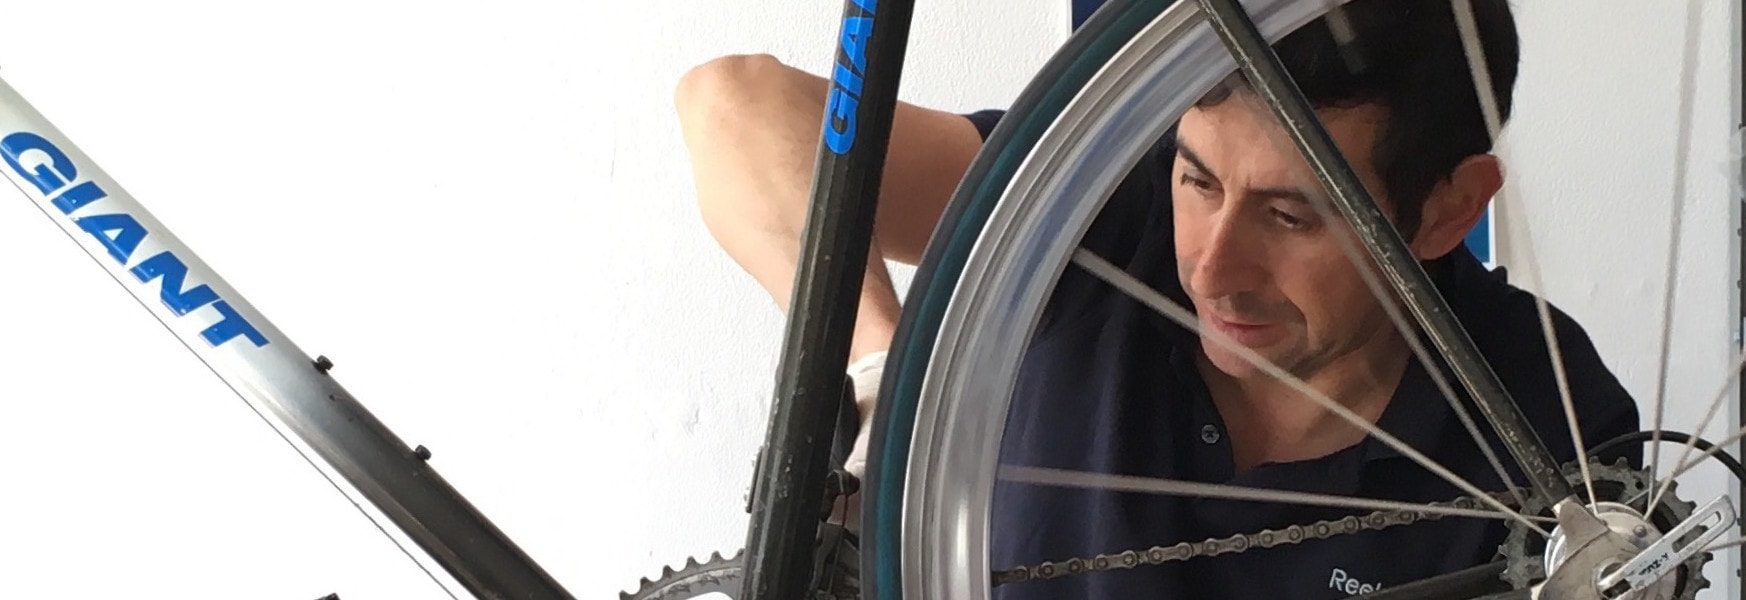 BIKE REPAIRS PALERMO  Bike repair in Palermo, if your bike is damaged, rusted or needs a tune-up, call us or come to visit, if you need us we will be on site to take it and once refurbishing riconsegneremo you the comfort of your home . Do not hesitate[...]